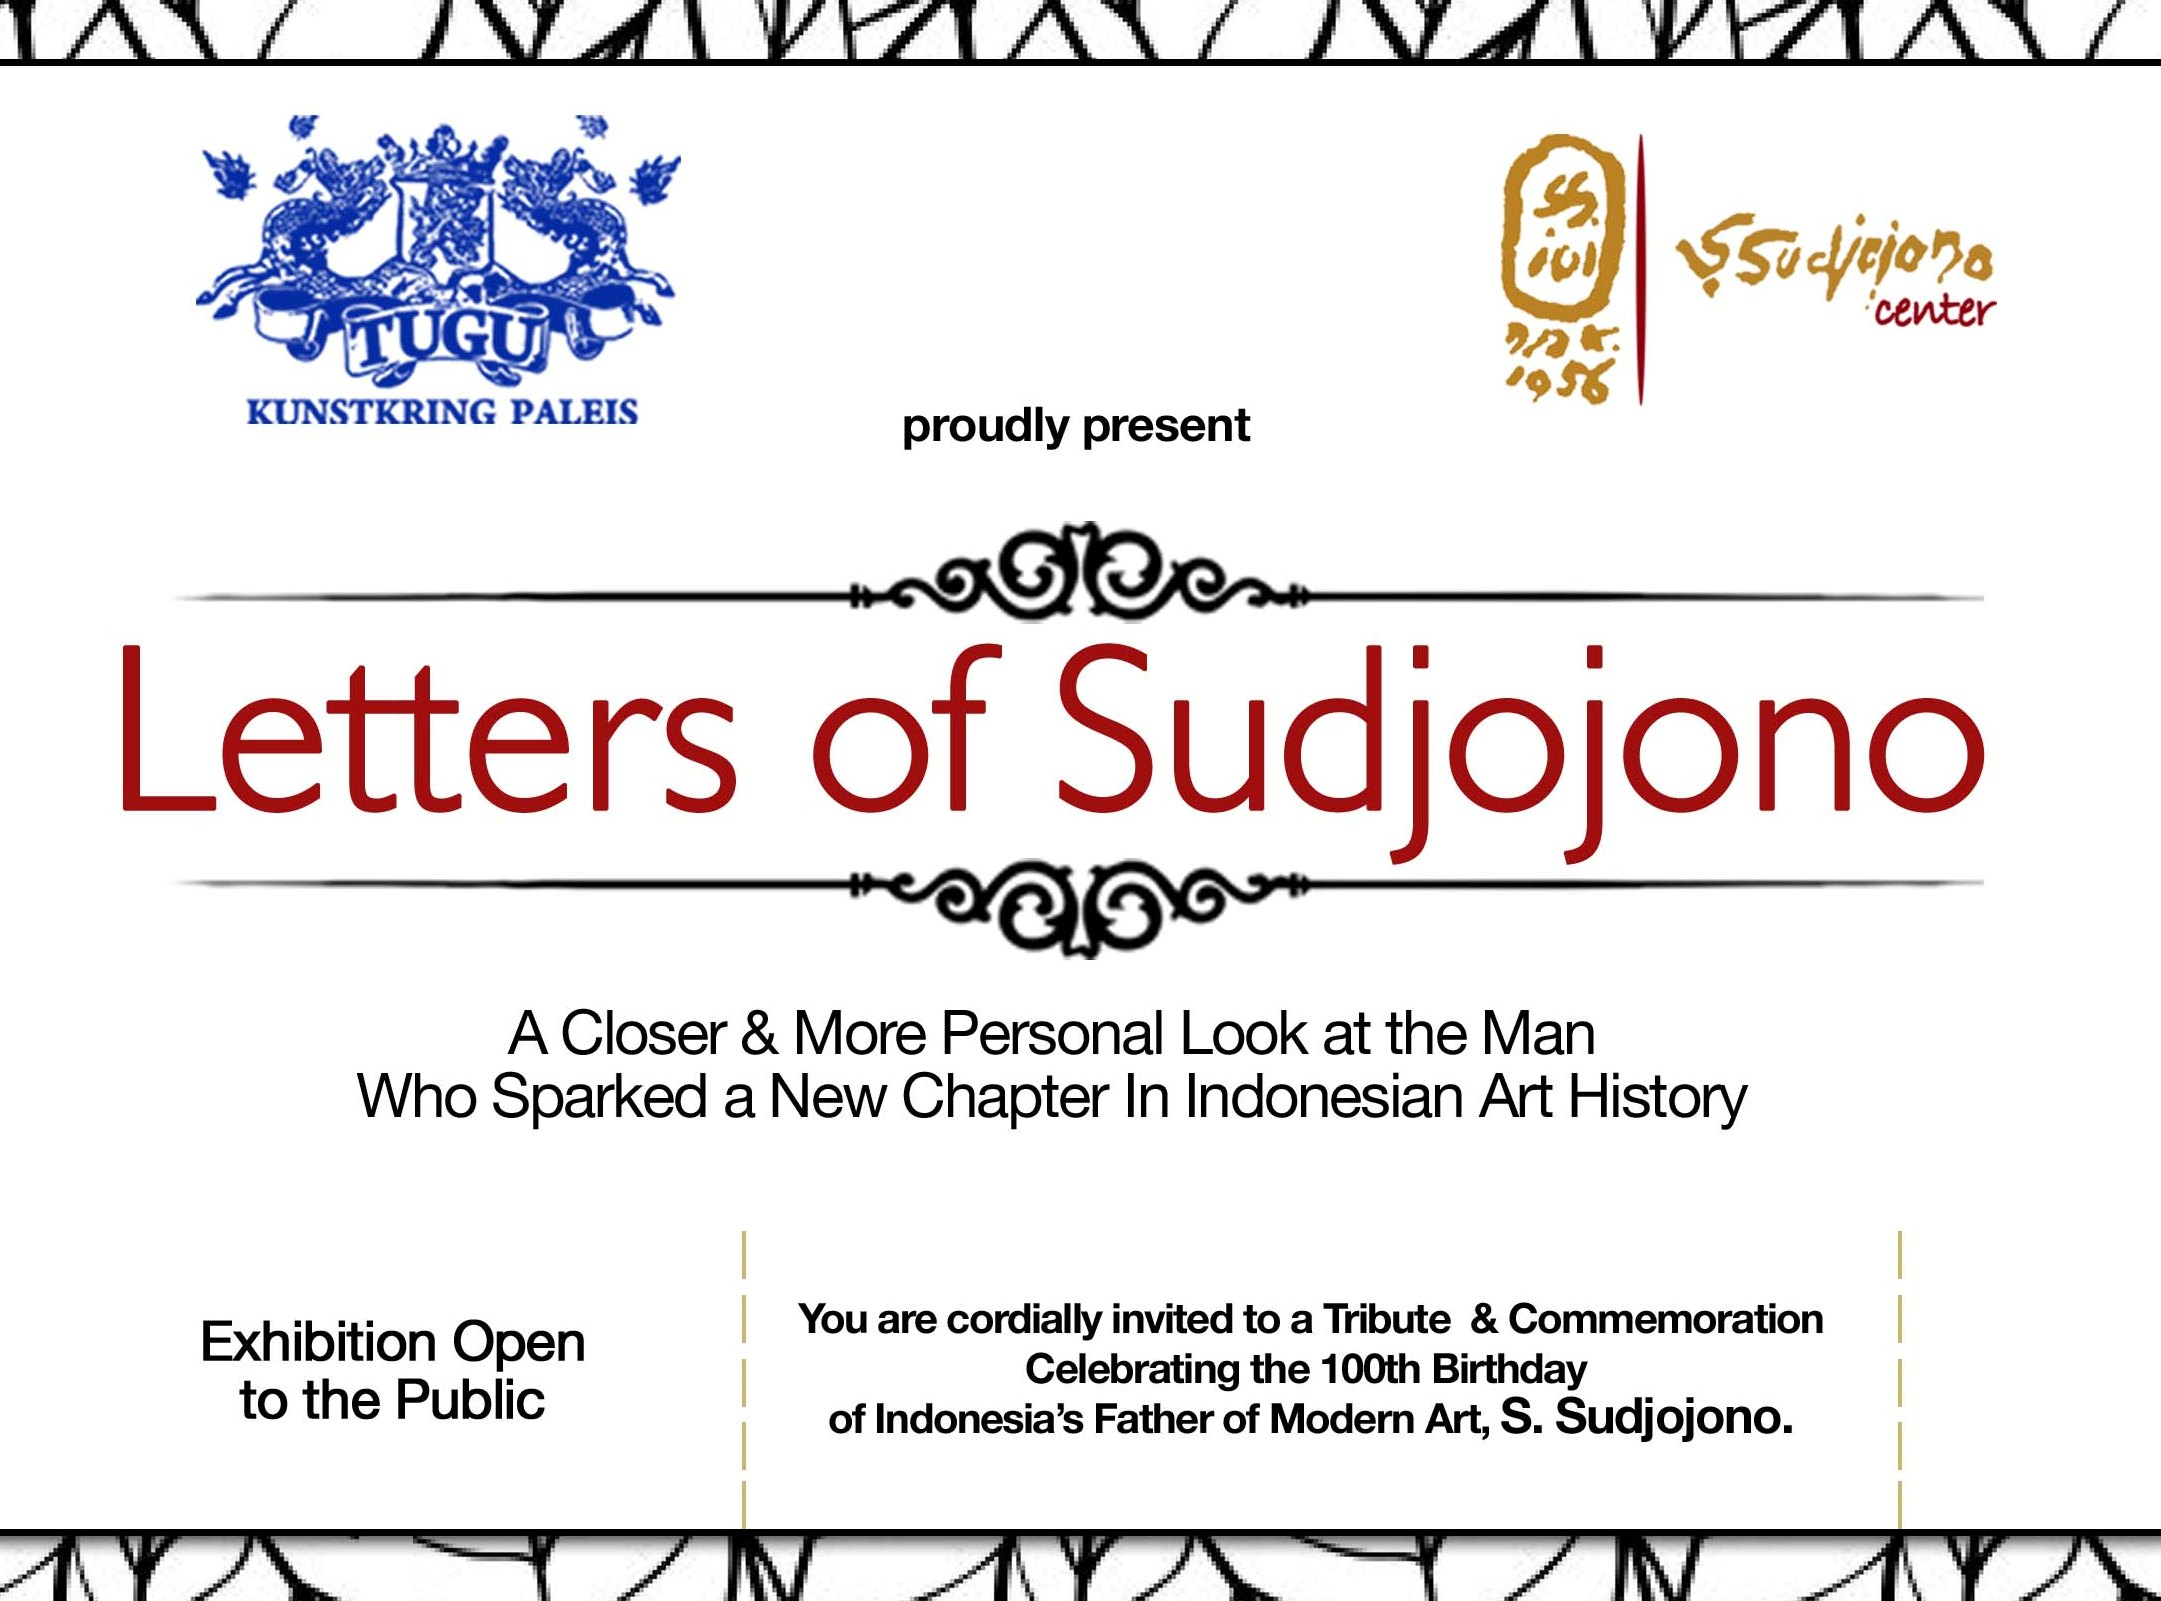 letters of sudjojono - a closer & more personal look at the man who sparked a new chapter in indonesian art history - tugu kunstkring paleis